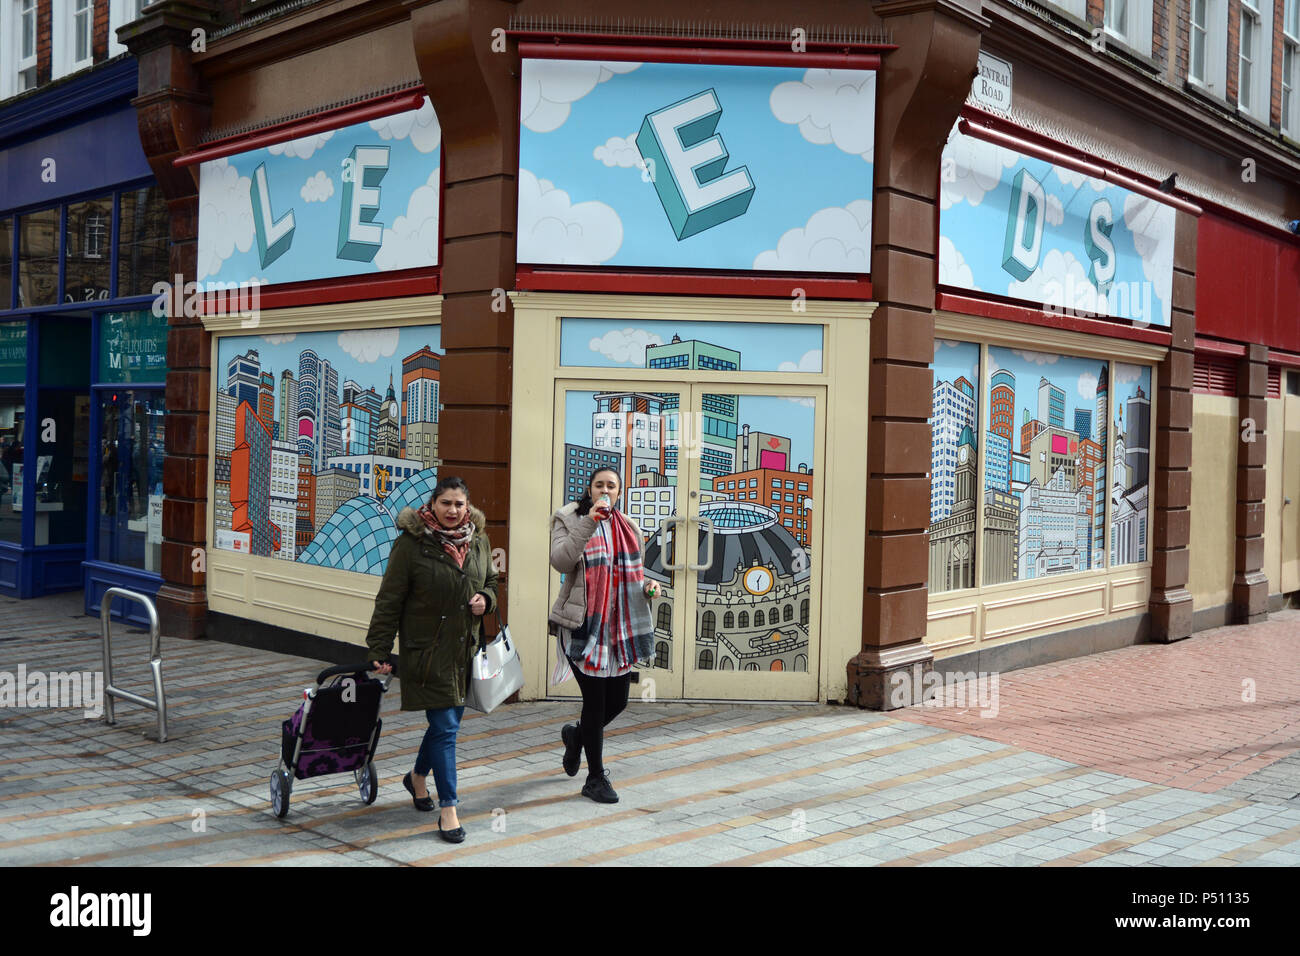 Two young women walk past an empty storefront with a wallpaper illustration of the city of Leeds, in a pedestrian zone, Leeds England, United Kingdom. - Stock Image